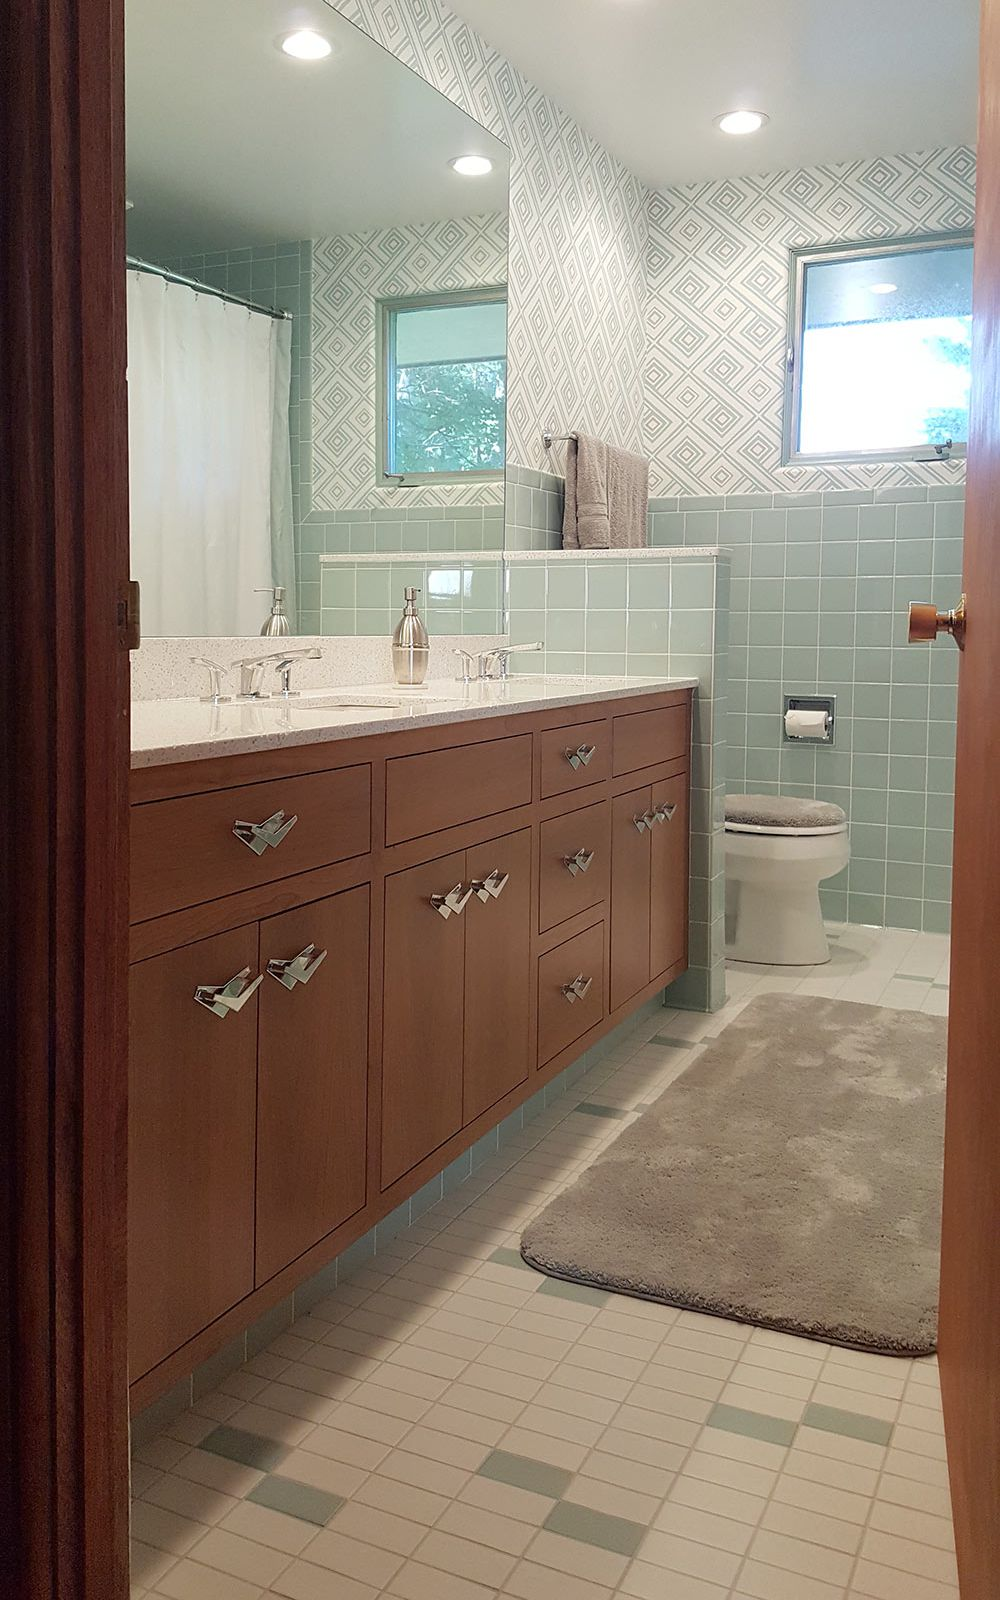 Retro modern bathroom